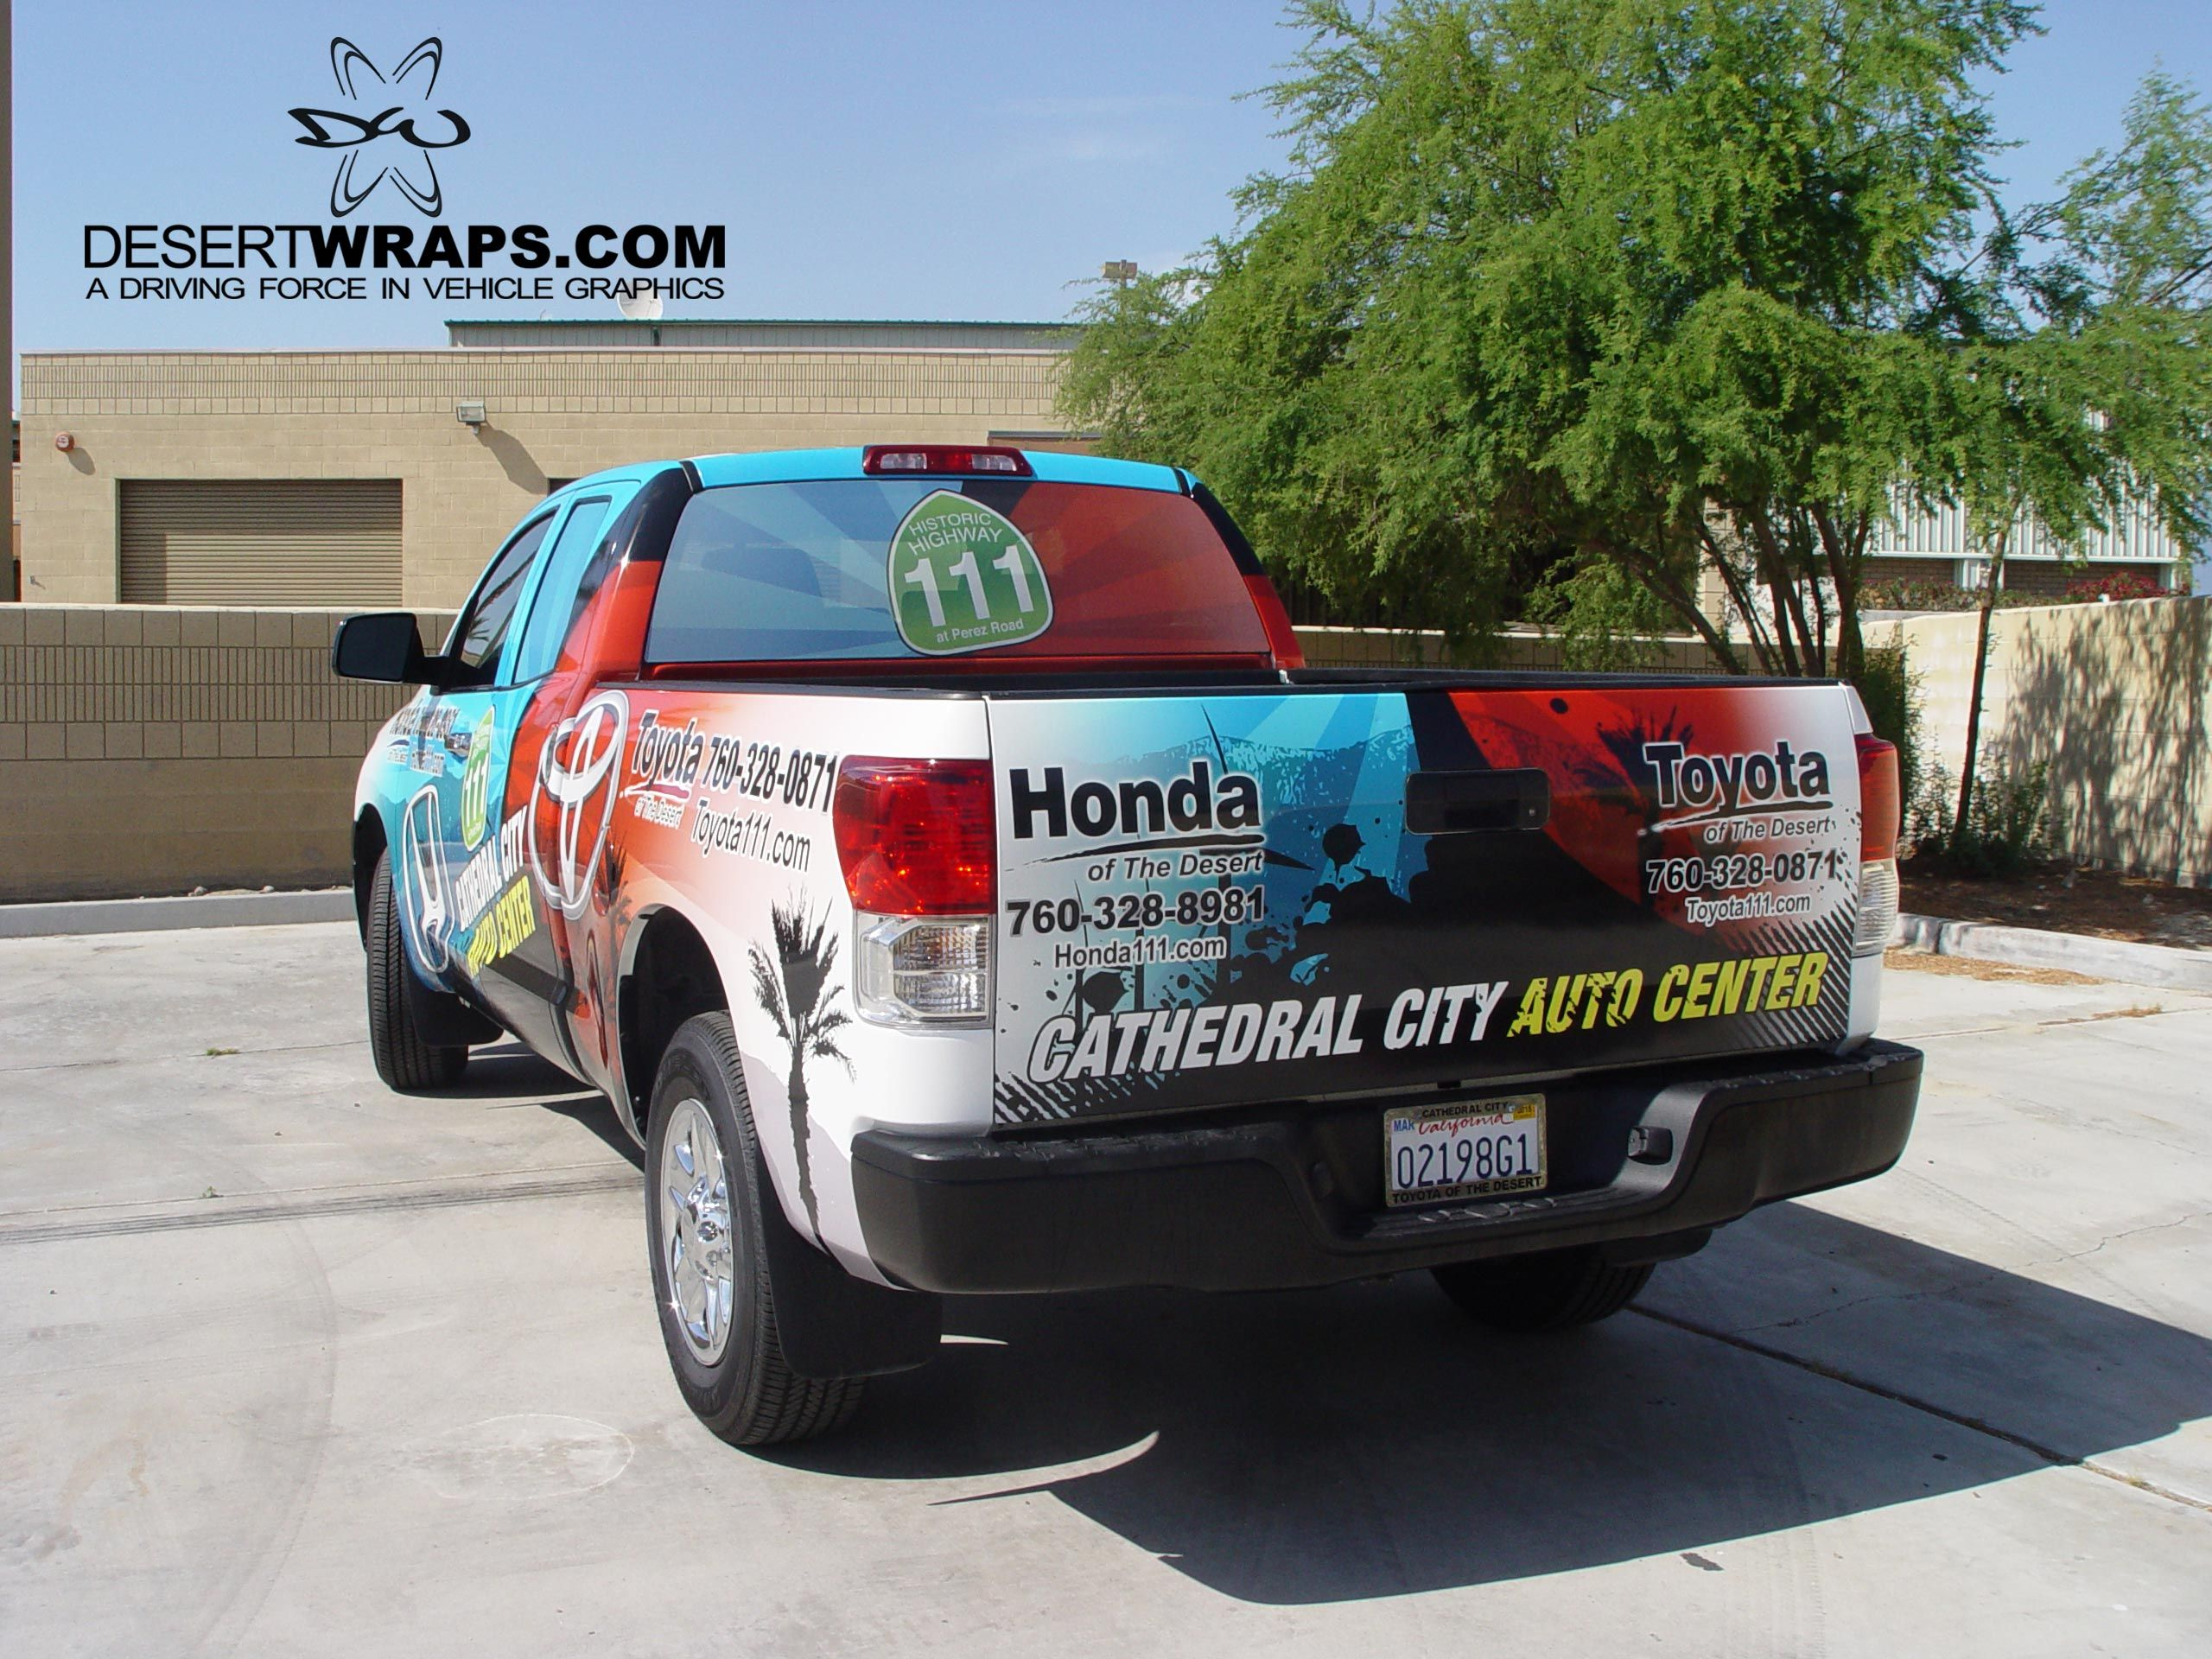 High quality and high resolution vinyl truck wrap for Honda of the Desert. Contact us DesertWraps.com 760-935-3600  #TruckWrap #Toyota #Tundra #Vinyl